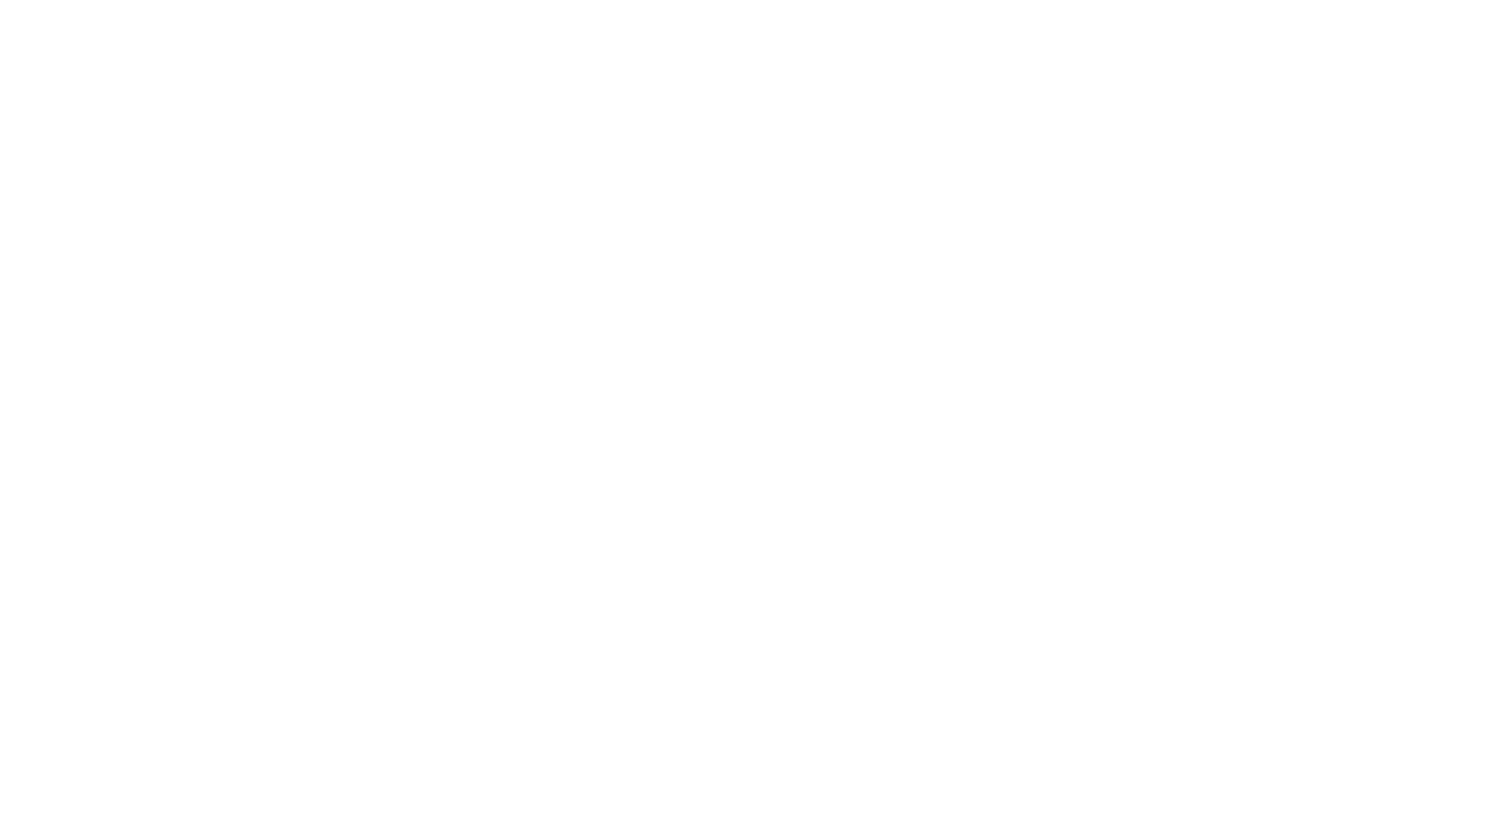 Friendsphotog